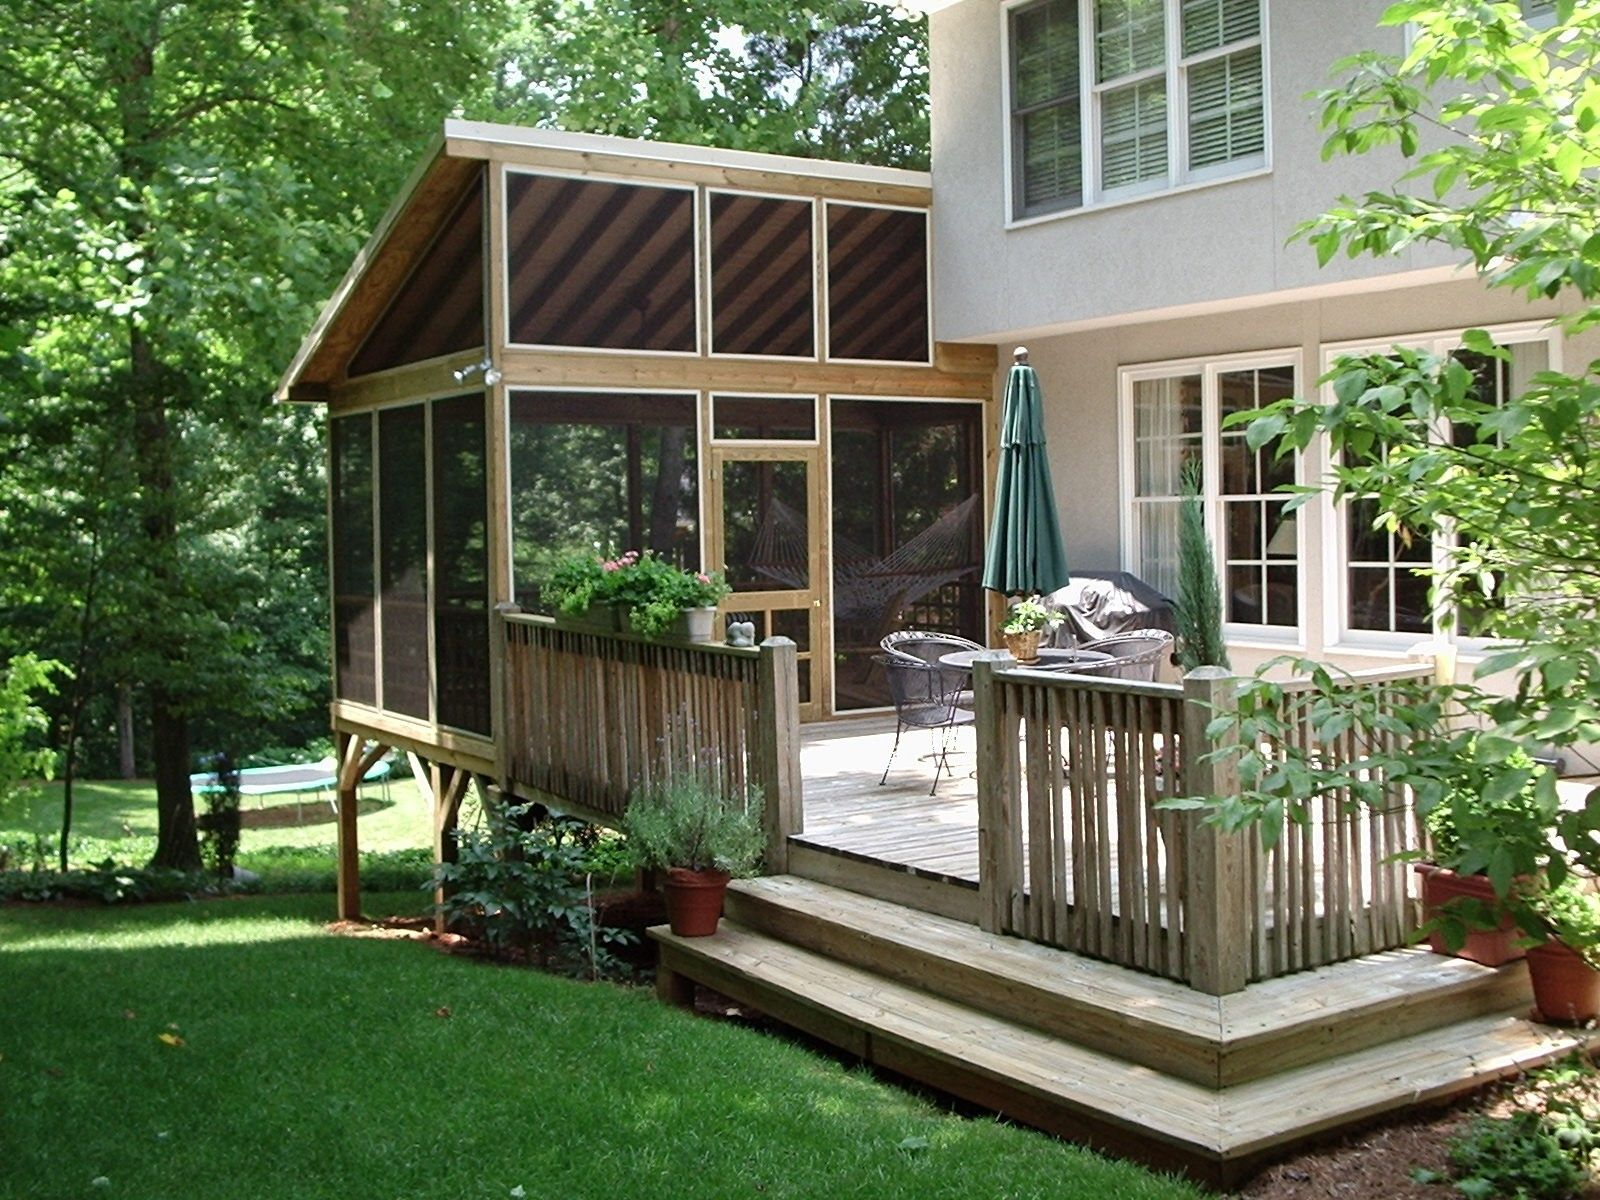 Portable Screen Porch For Deck Porch Design Decks And Porches House With Porch